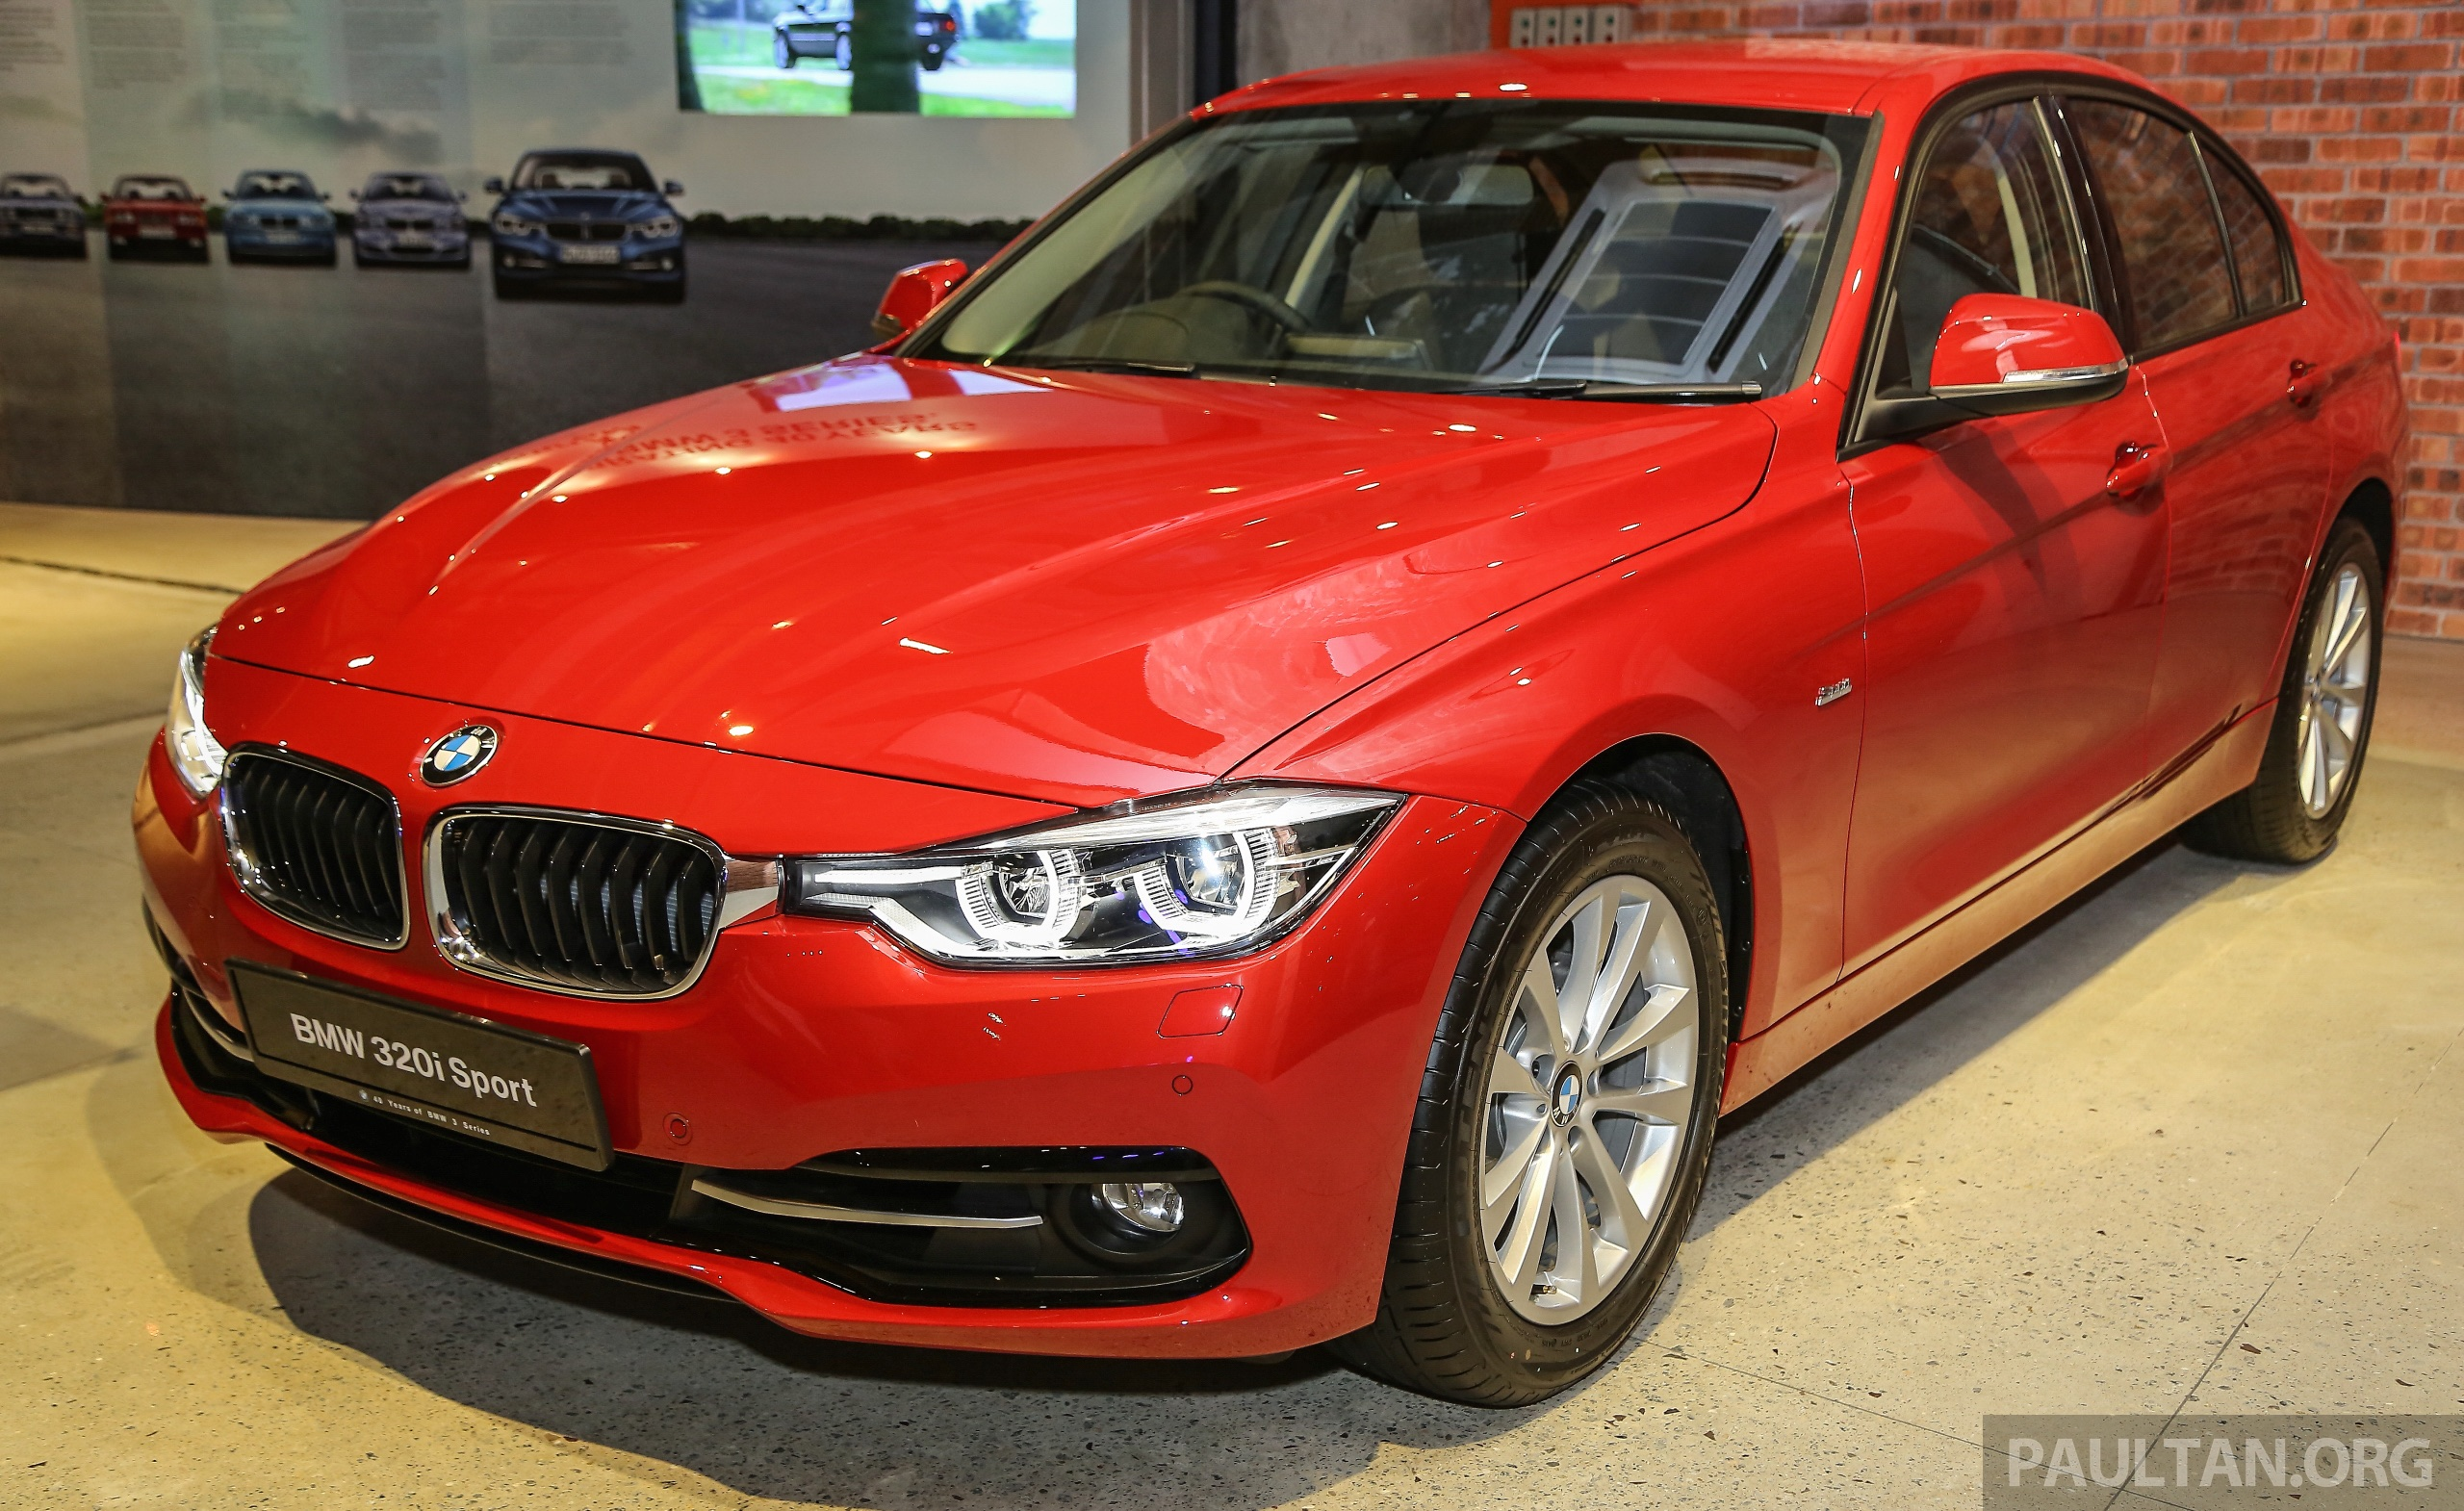 Bmw Malaysia To Assemble Bmw 3 Series 5 Series And 7 Series For Export To Vietnam Philippines